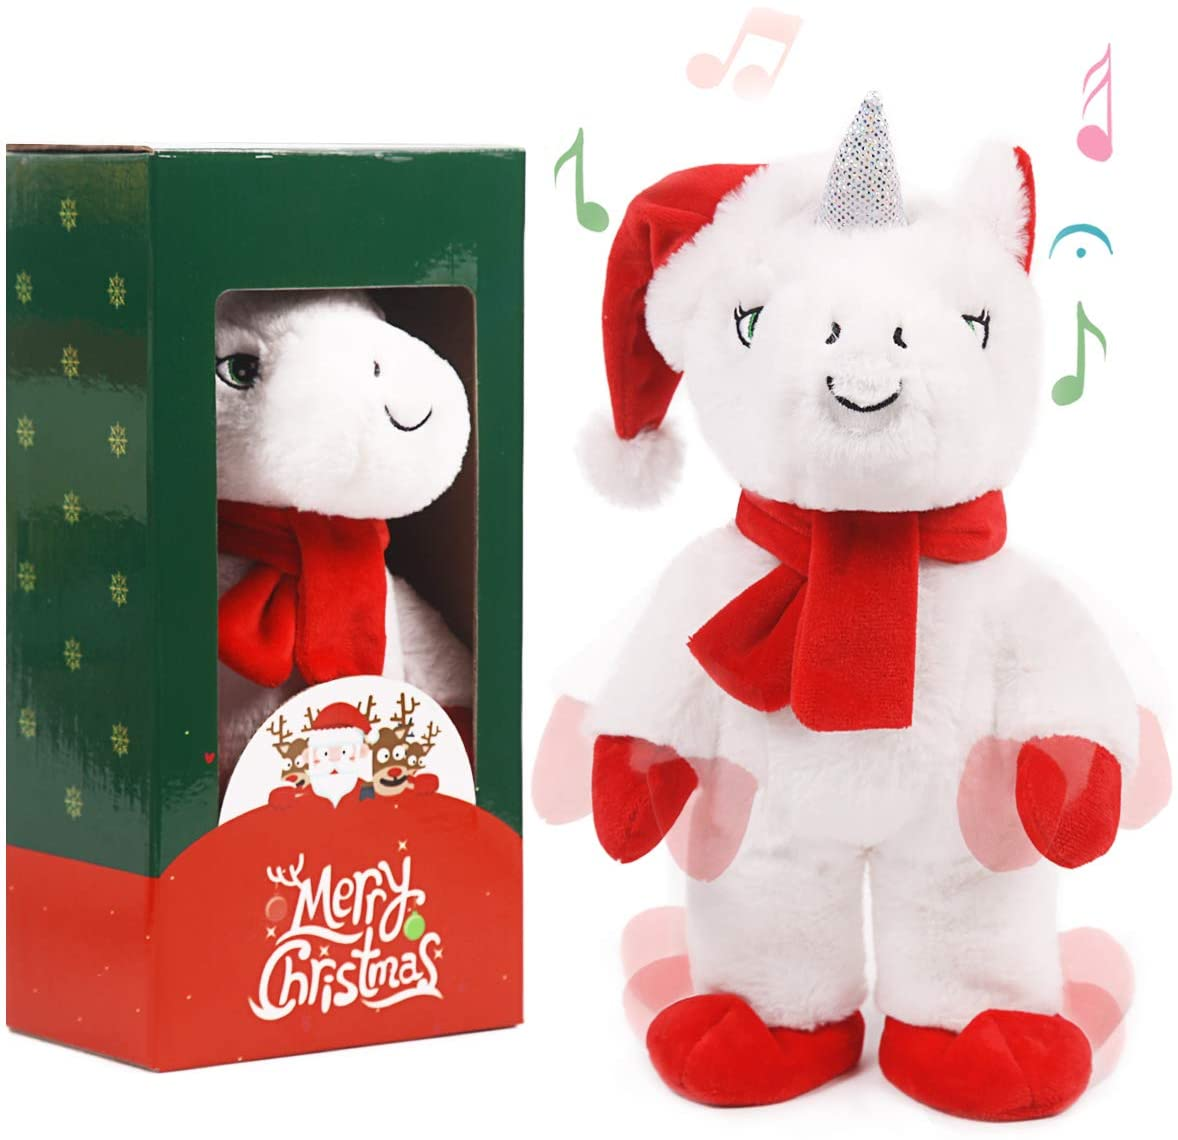 ARELUX Cute Christmas Unicorn Toy,Funny Electric Singing and Dancing Toy,Xmas Ornaments Gift for Kids (White)